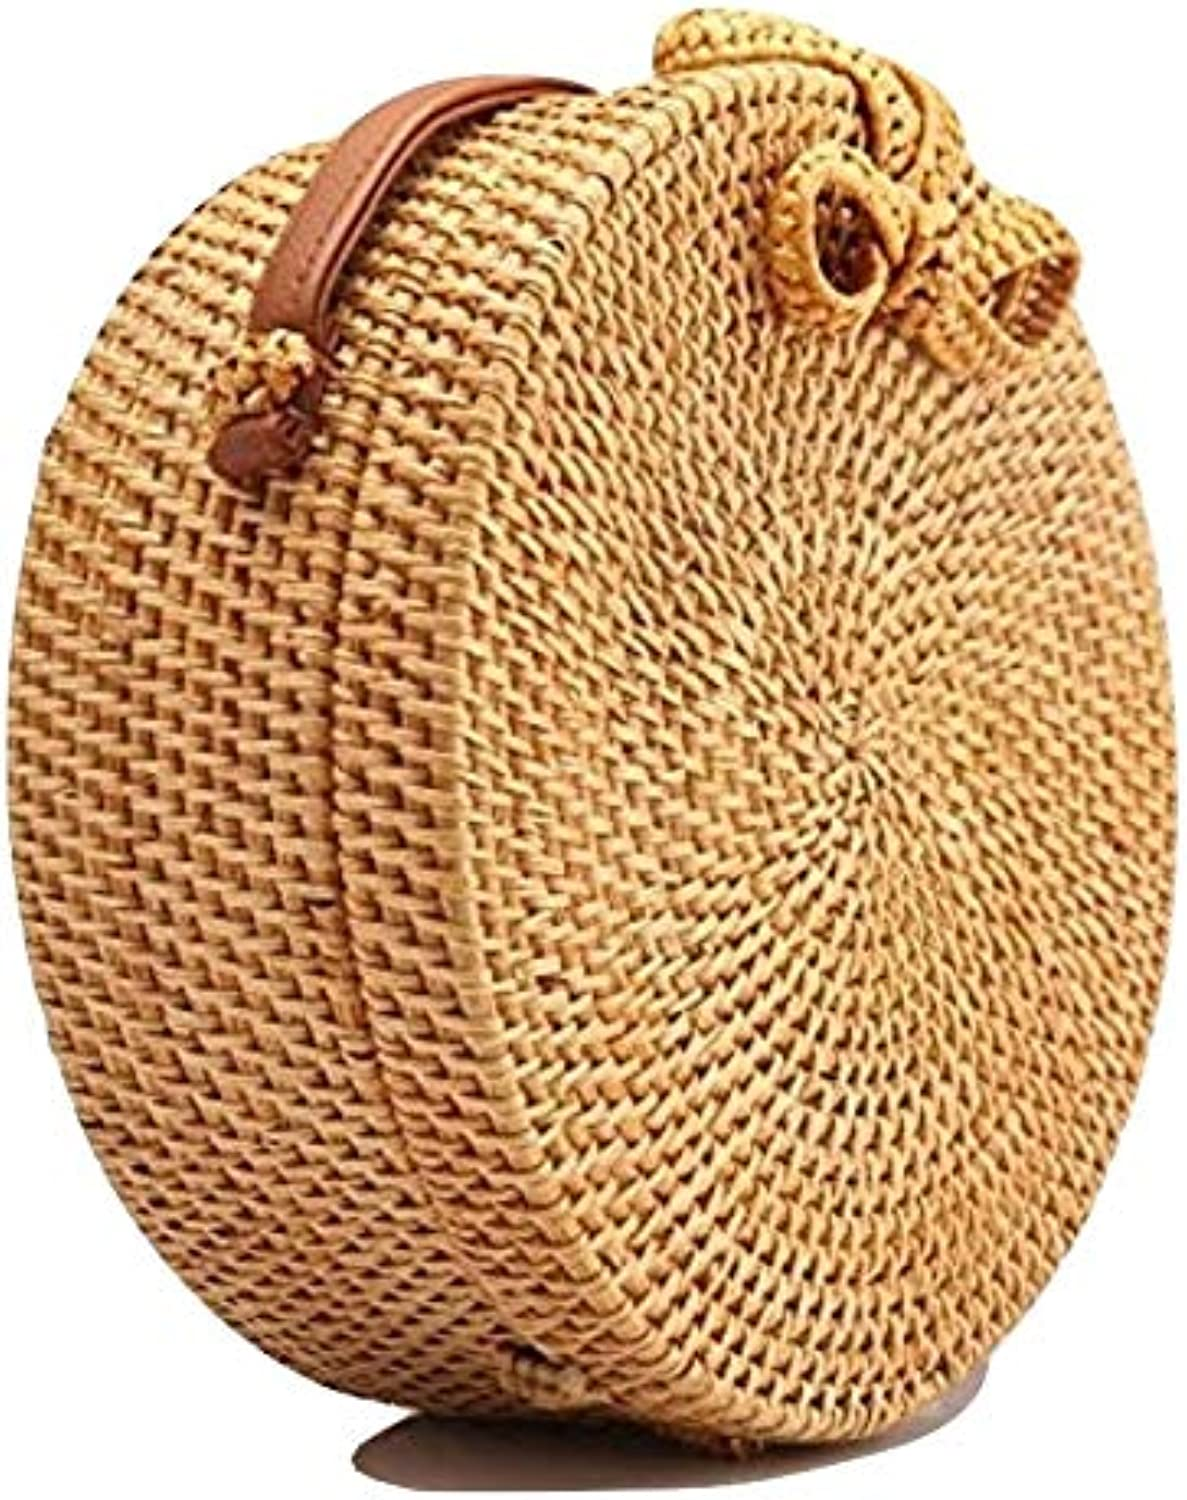 Herblandia Bali Island Natural Hand Woven Bag Round Butterfly Buckle Rattan Straw Beach Circle Bag Bundled with Neck Scarf